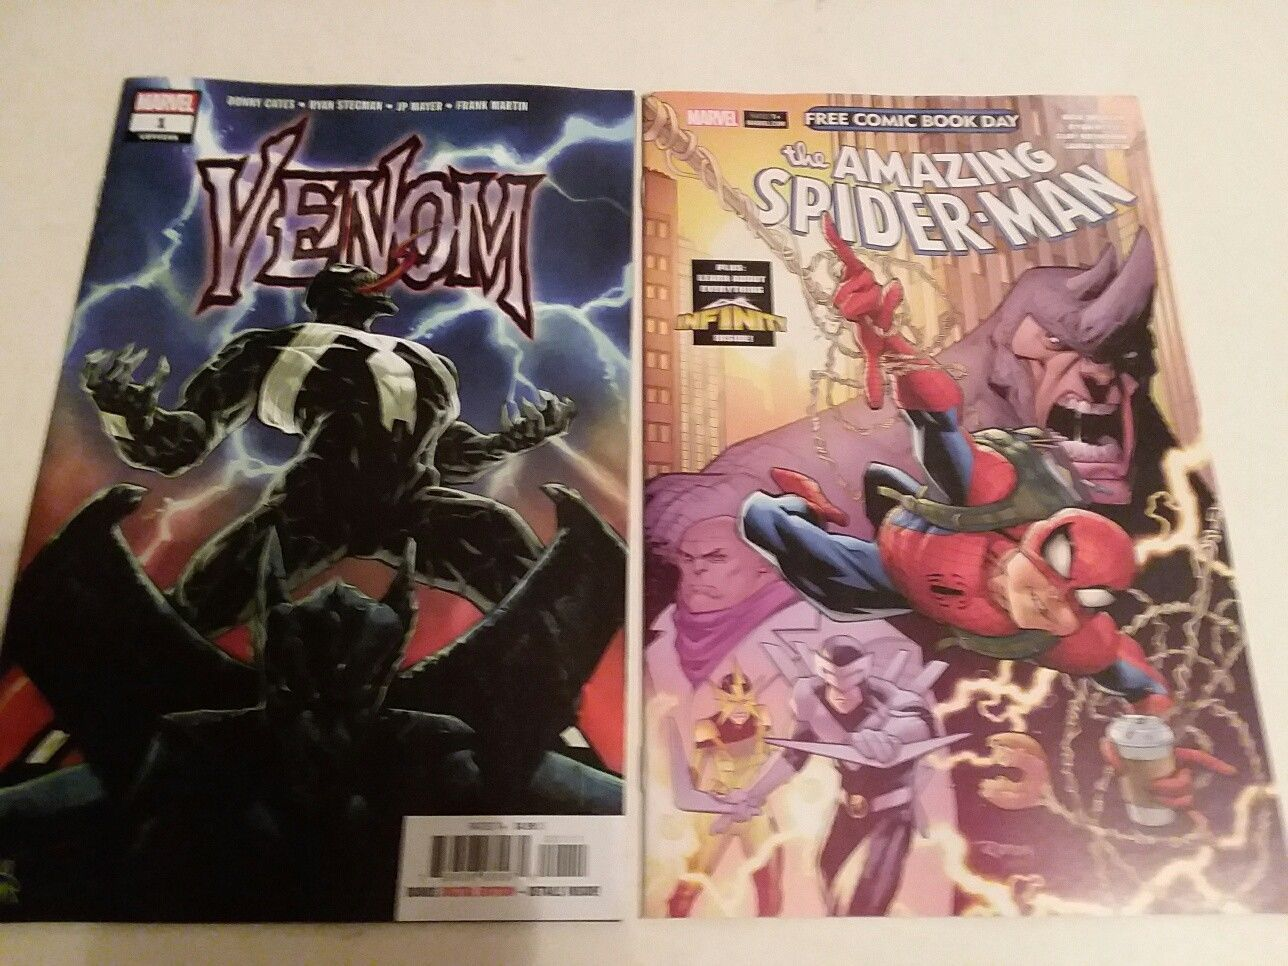 Primary image for VENOM #1 AND AMAZING SPIDER-MAN FCBD 2018 - DONNY CATES - FREE SHIPPING